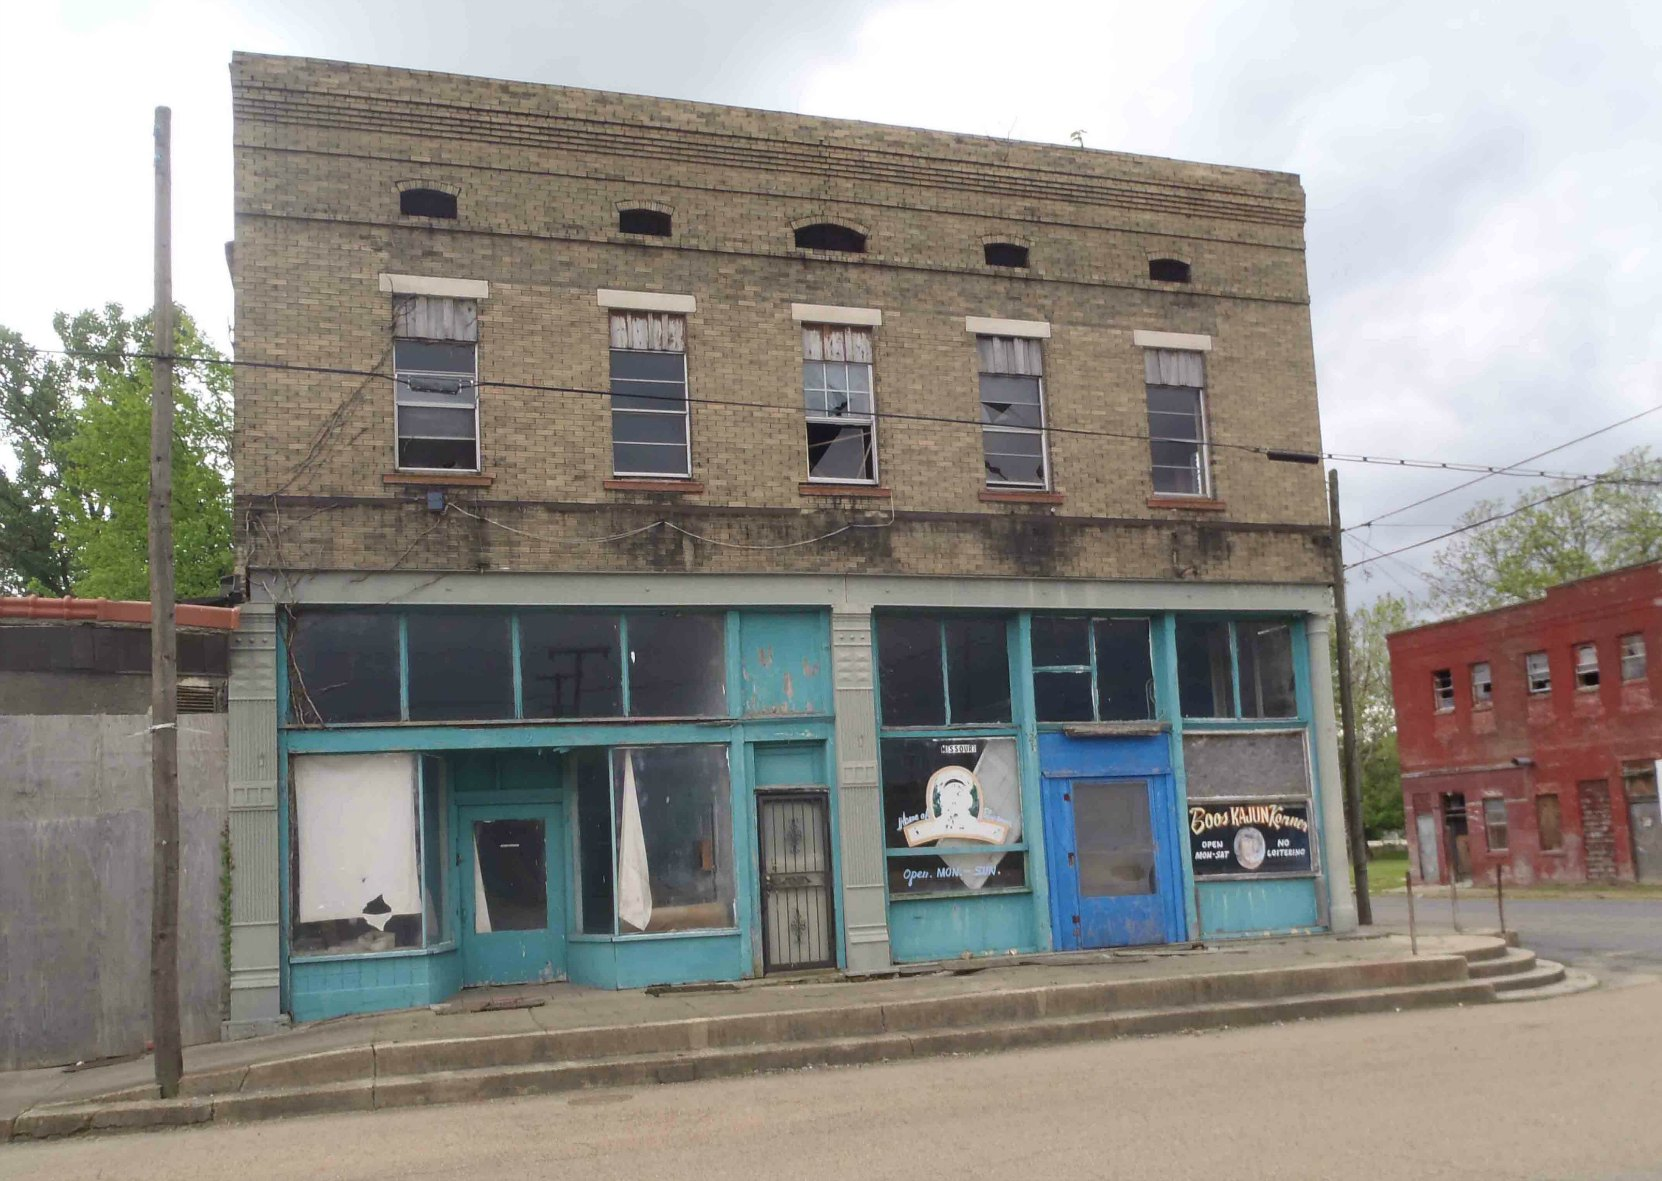 119 Missouri Street in downtown Helena, Arkansas. This building once contained the Kit Kat Club where bluesmen like Robert Johnson played.